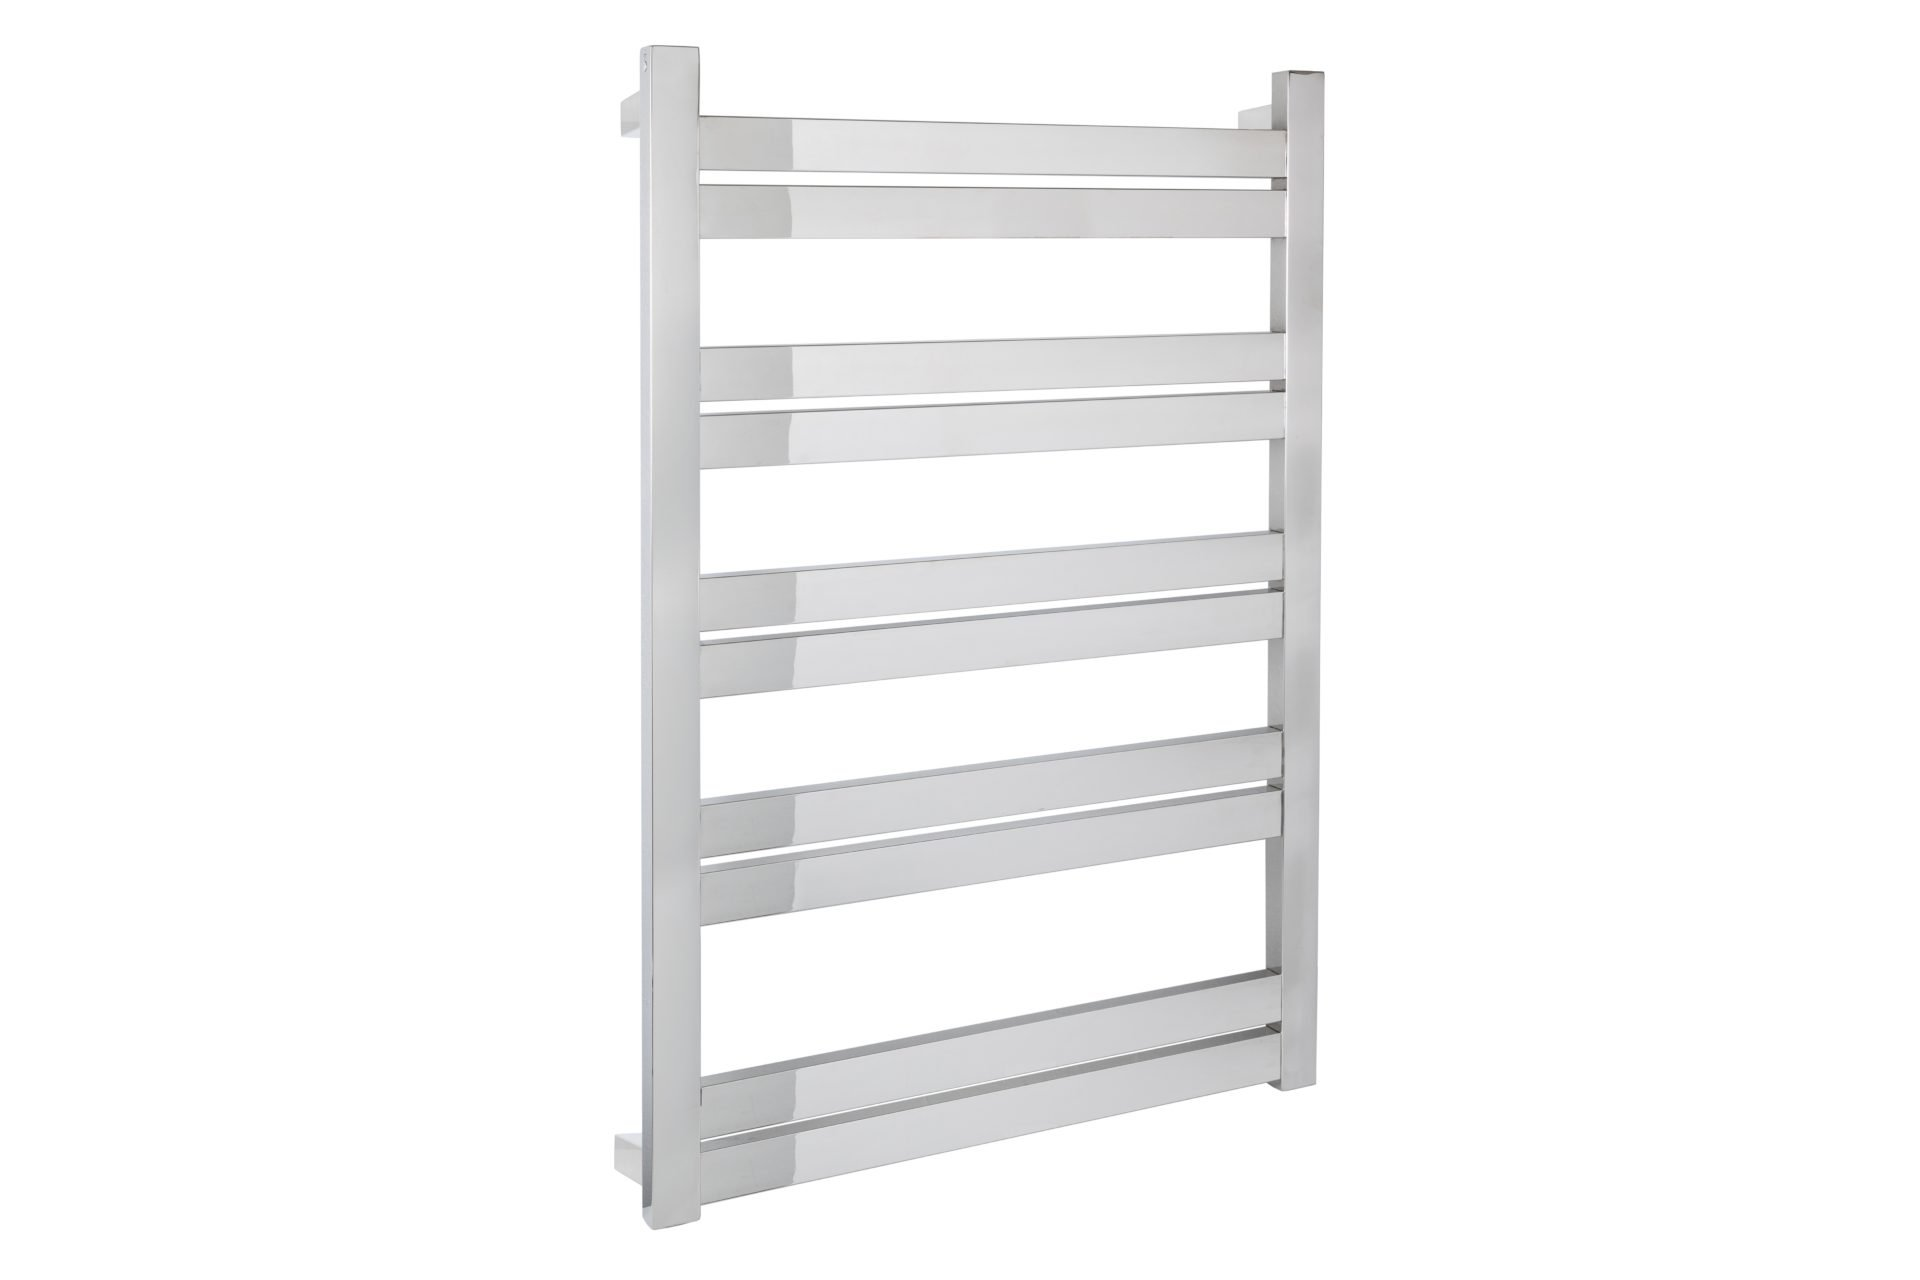 Siena 10 Bar Wide Heated Towel Rail- Chrome